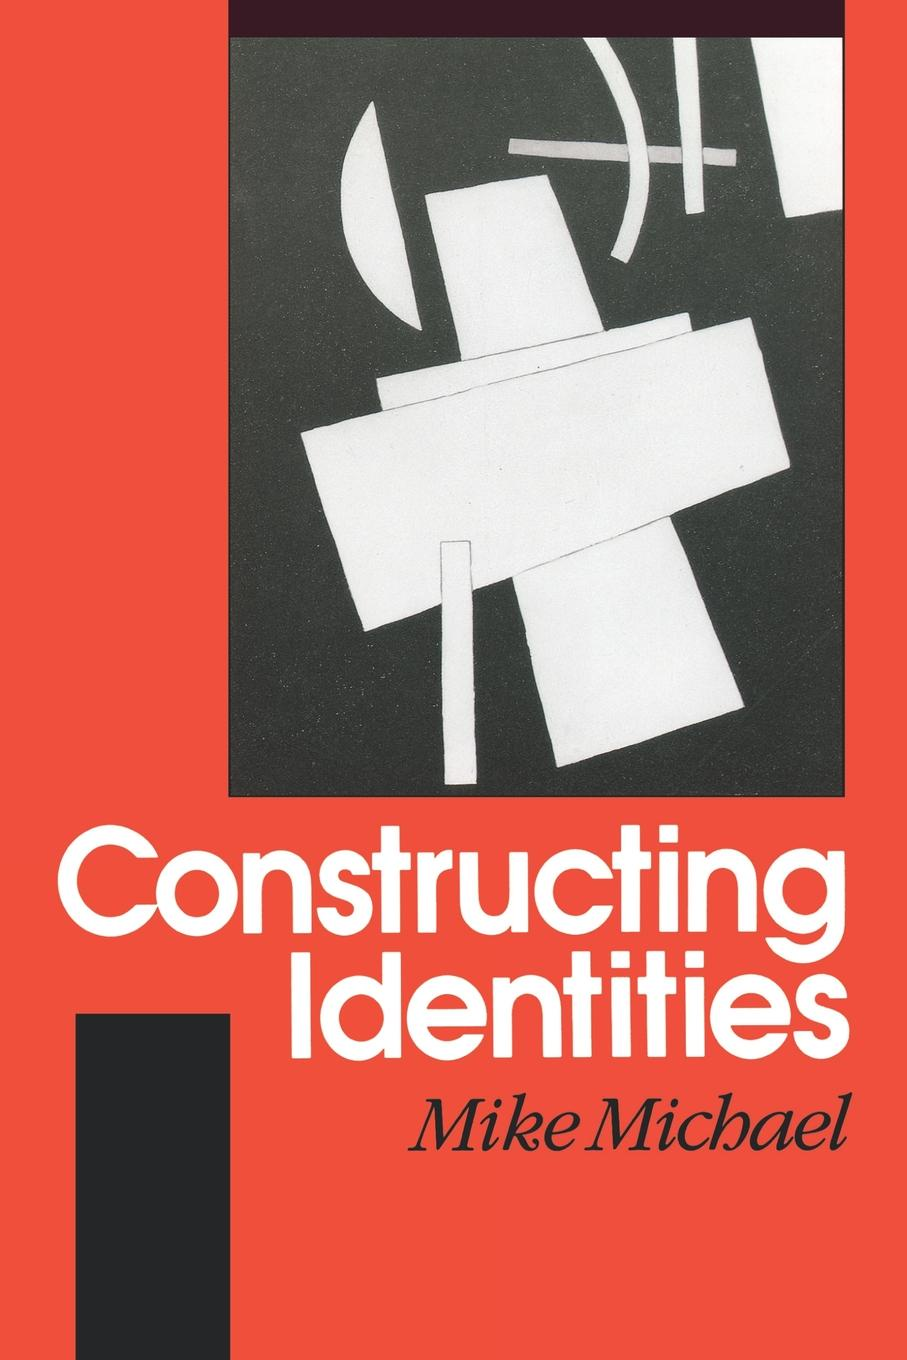 Mike Michael Constructing Identities. The Social, the Nonhuman and Change